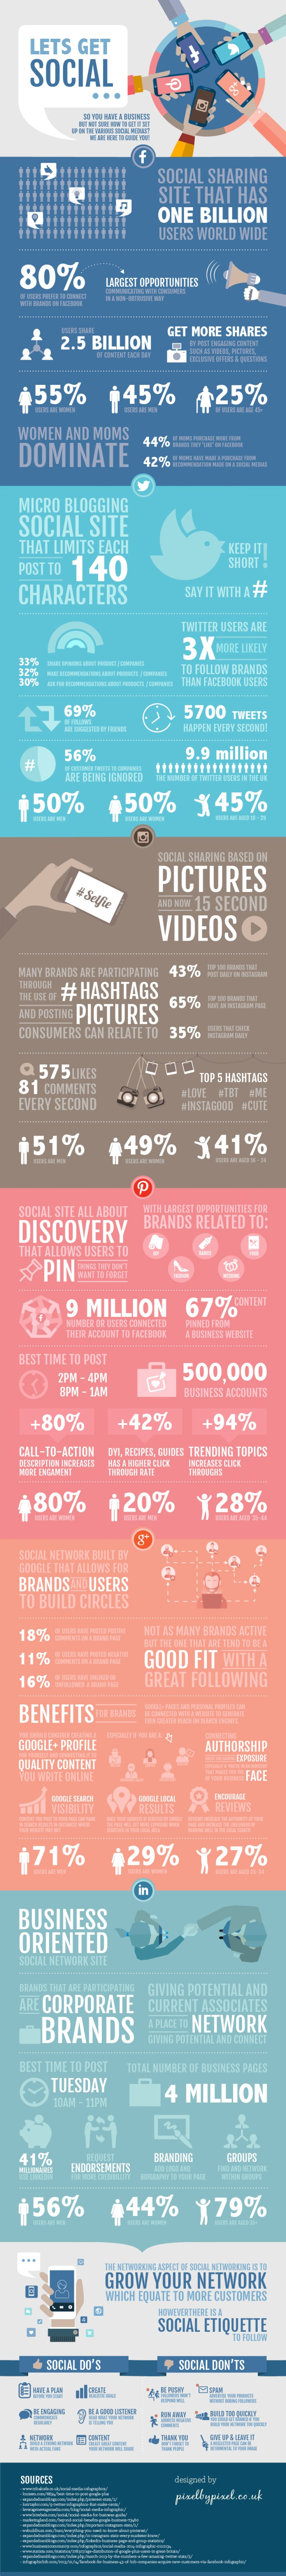 social-media-by-the-numbers